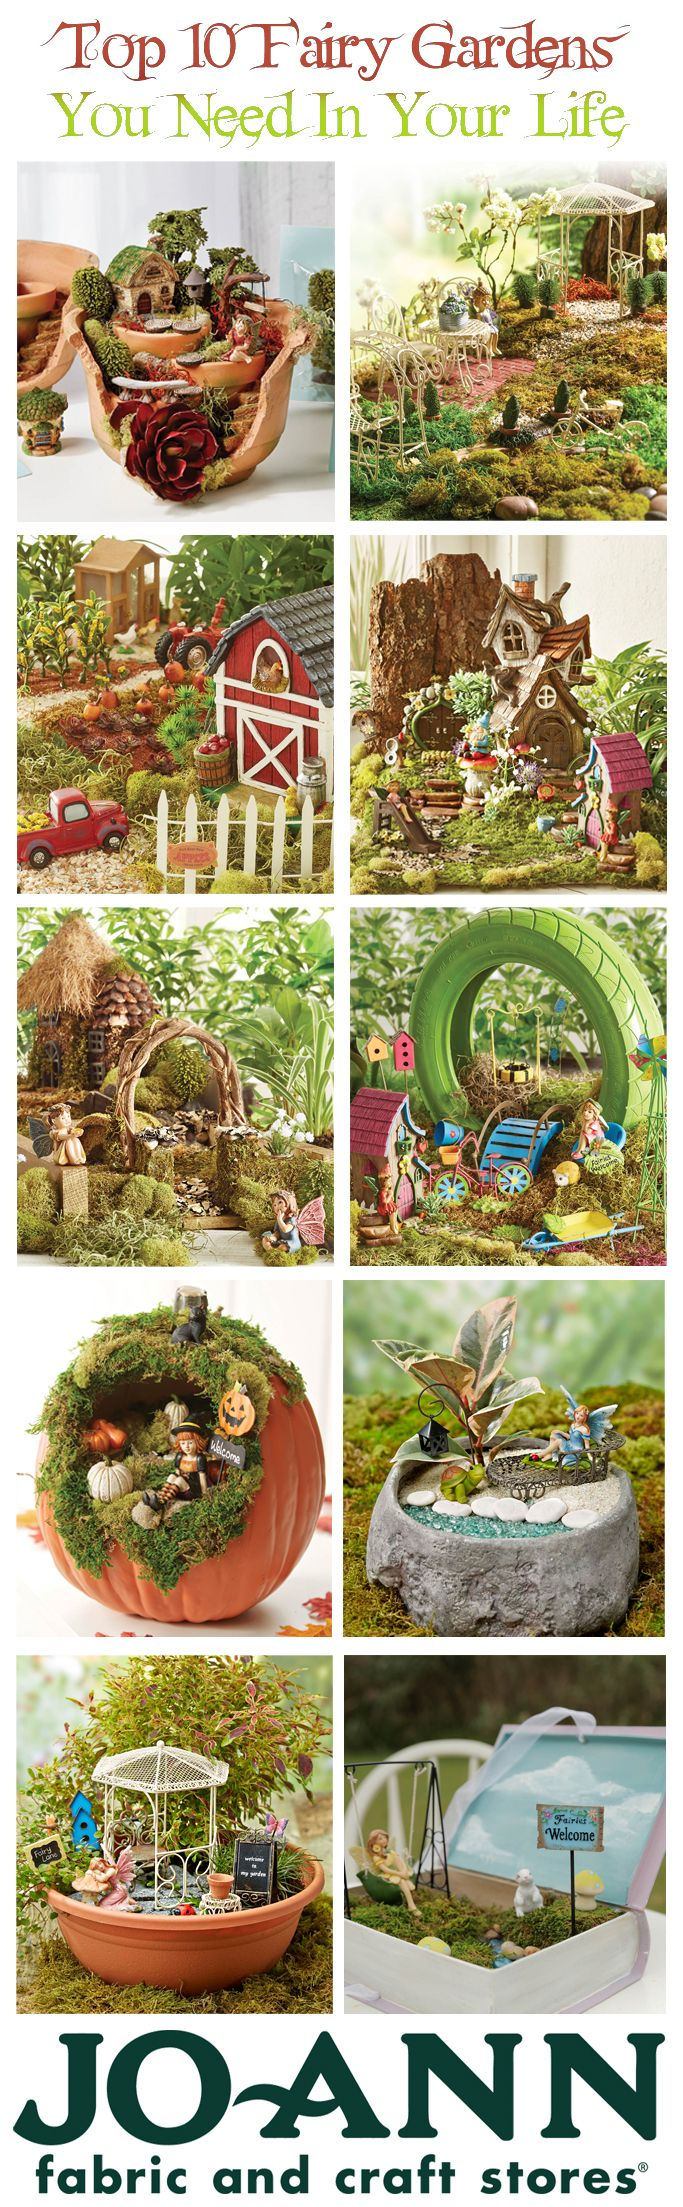 Top 10 Fairy Gardens That You Need This Spring! | Fairy Garden Tips And  Tricks